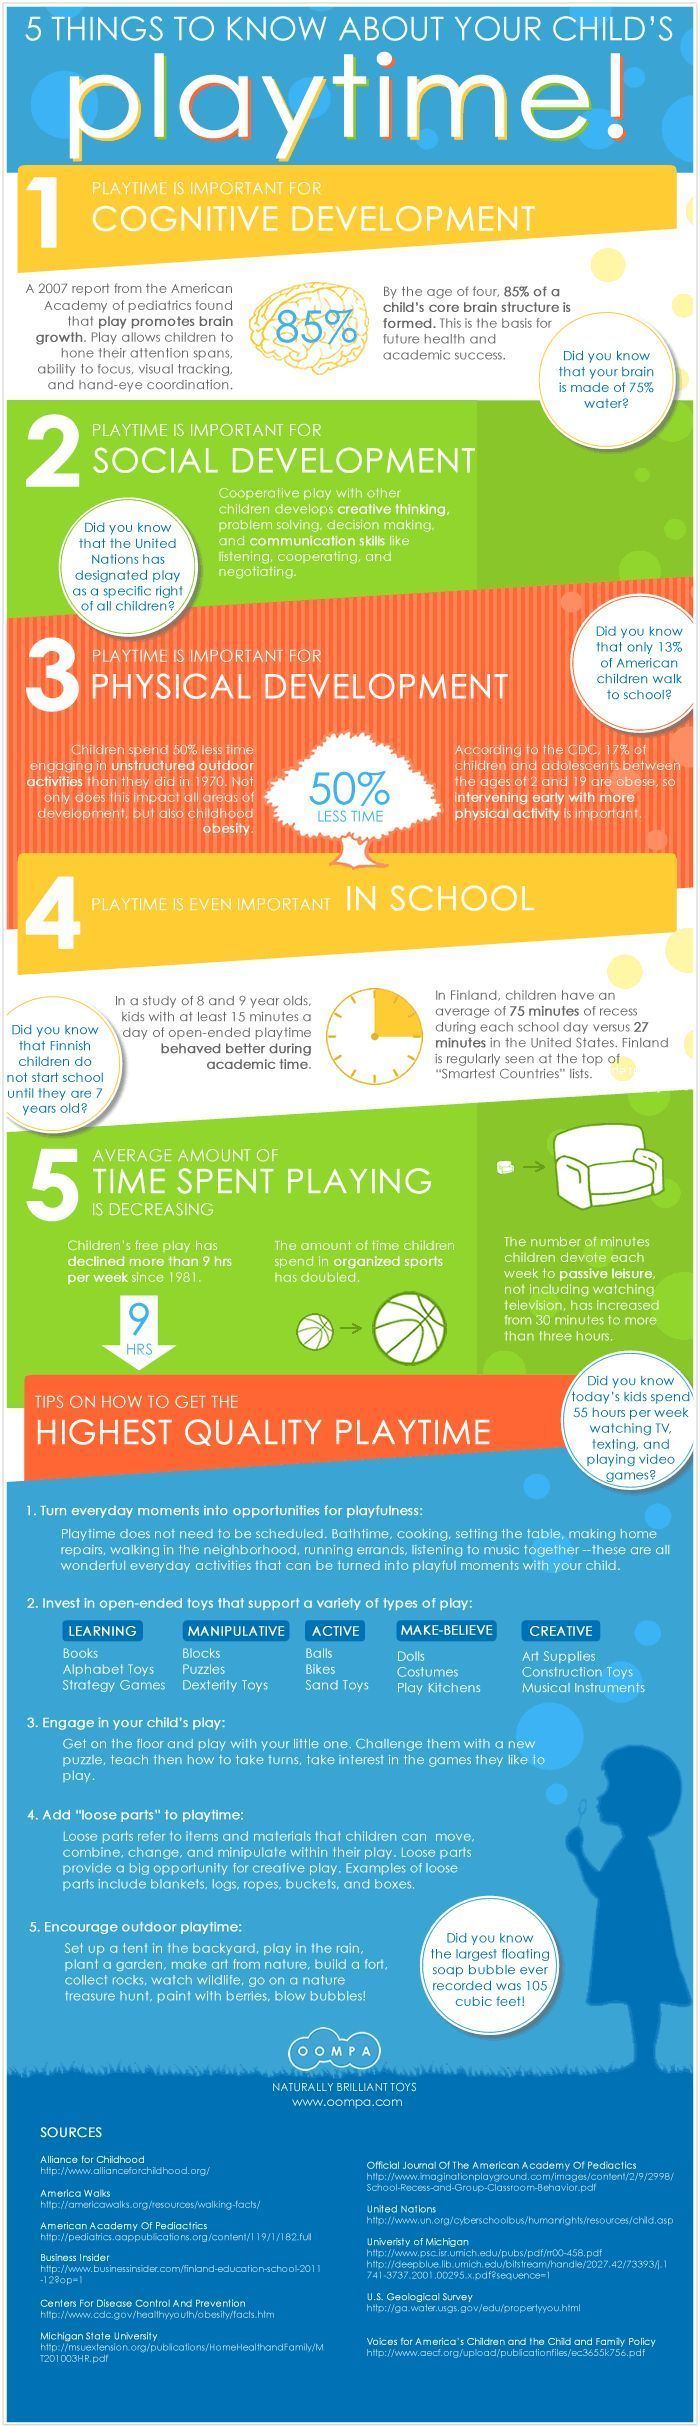 5 Things To Know About Your Child's Playtime! Brought to you by http://Oompa.com - the most trusted online source for baby toys, wooden toys, and unique European toys! #oompatoys